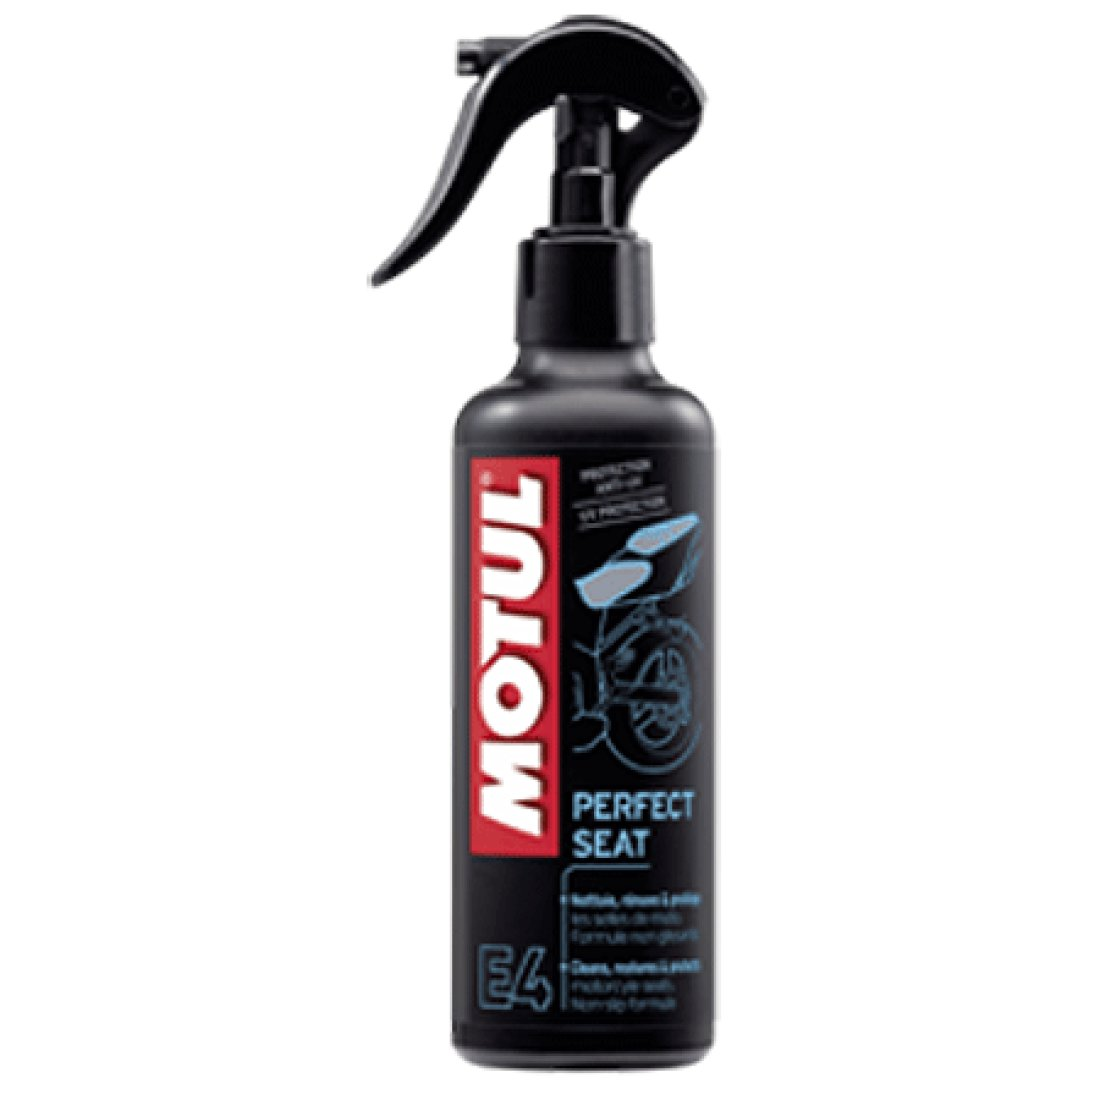 MOTUL PERFECT SEAT Oil and spray